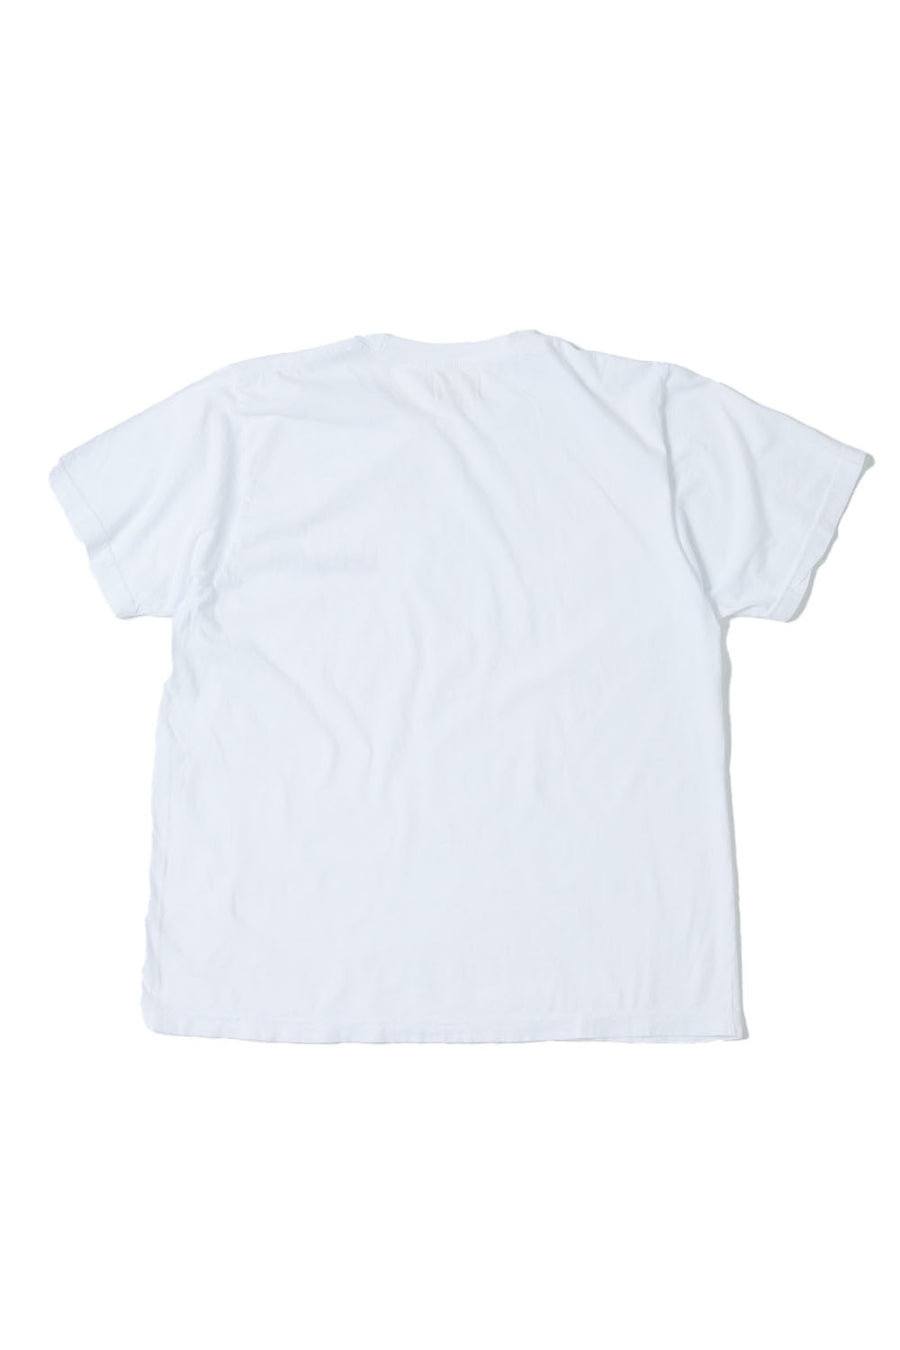 Upcycle Logo Tee | White